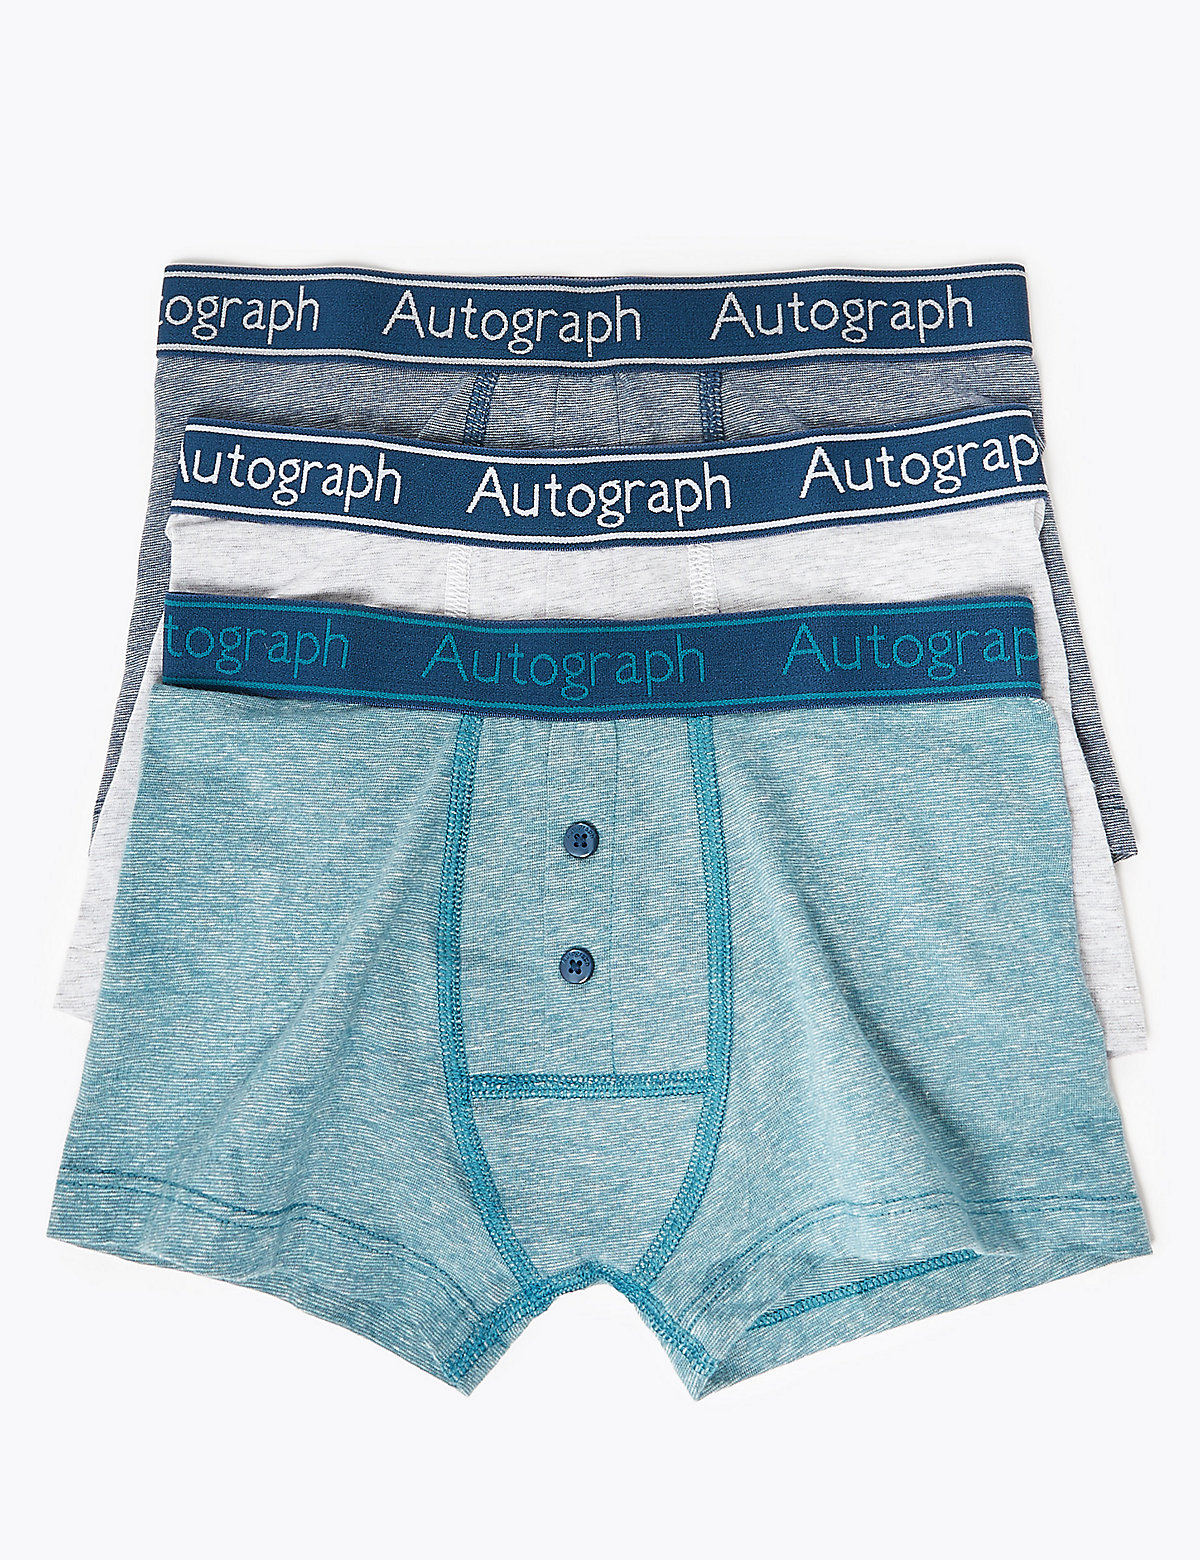 Autograph 3 Pack Cotton with Lycra Autograph Print Trunks (6-16 Years)